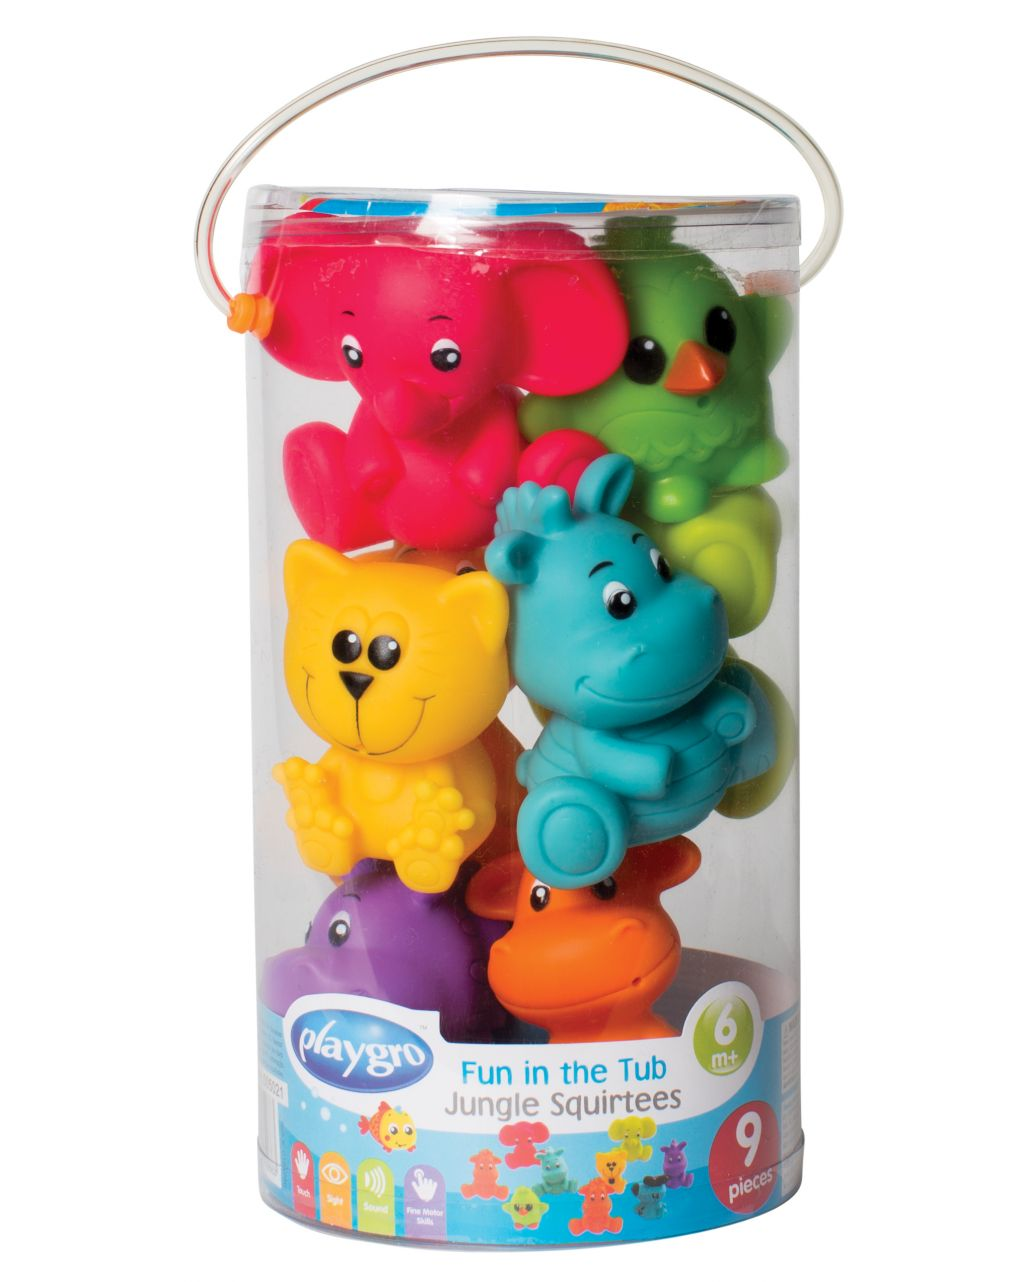 Playgro - fun in the tub squirtees - Playgro